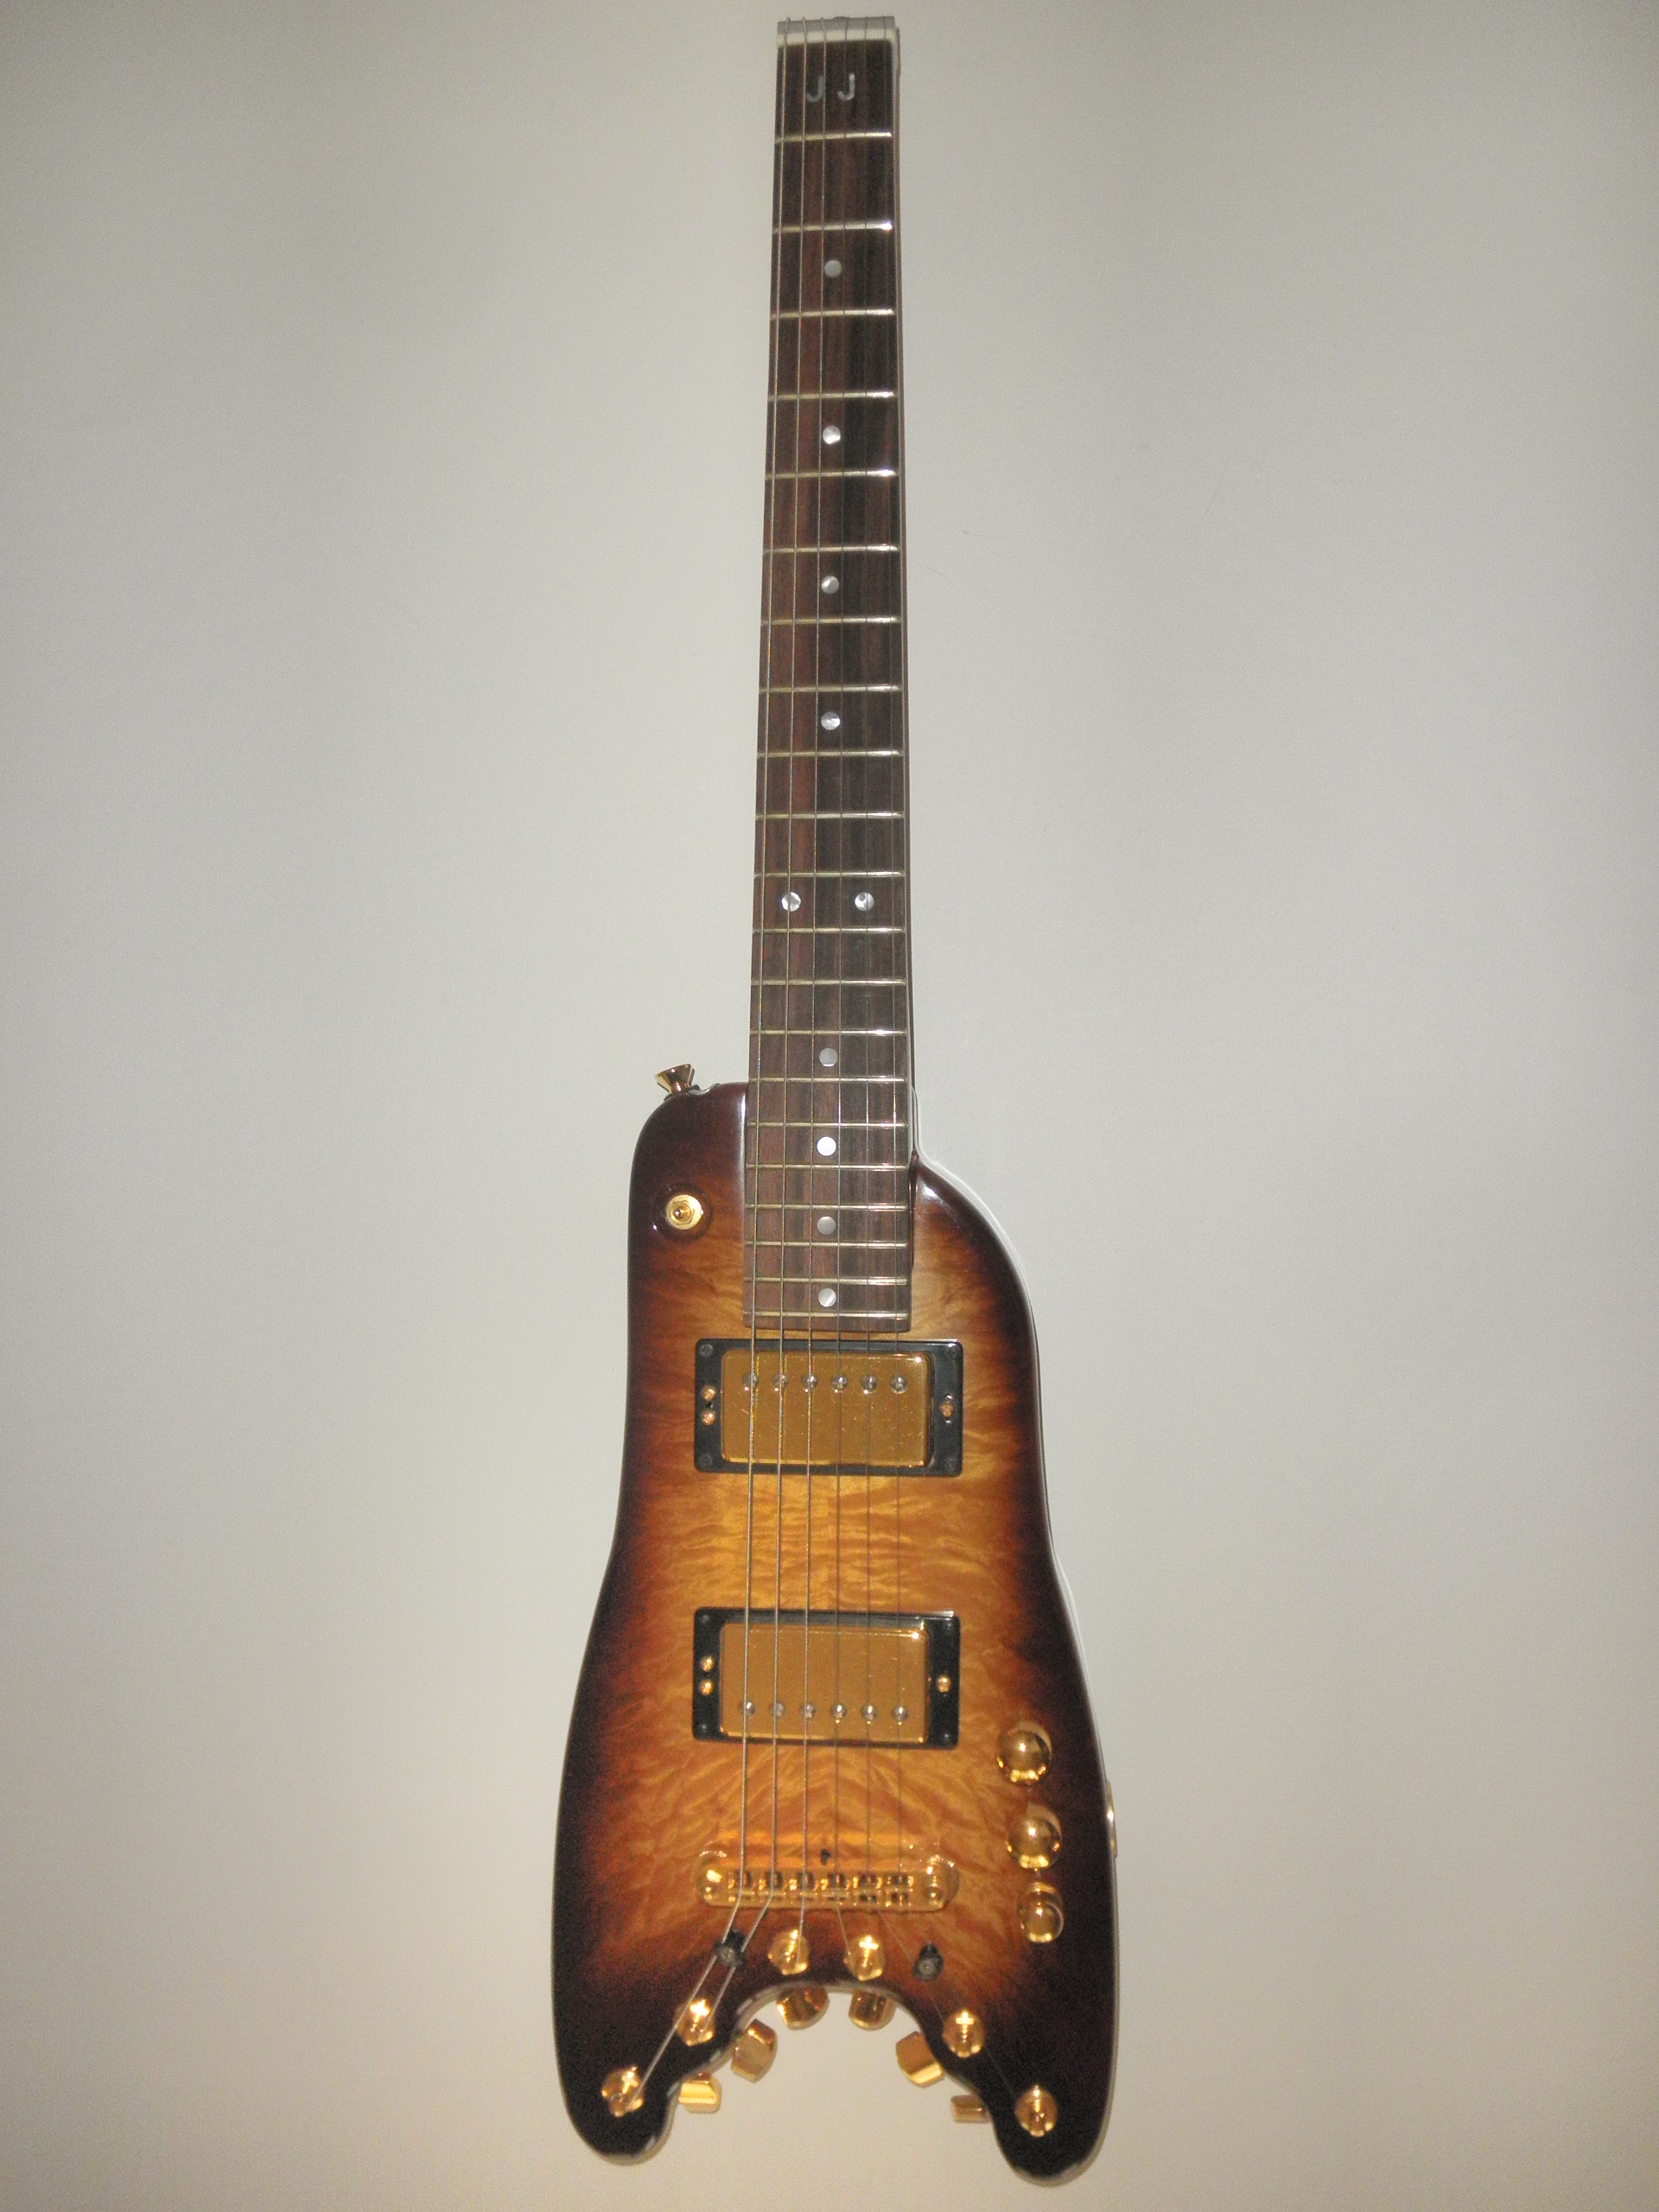 Custom Rambler Trave Guitar - Front view